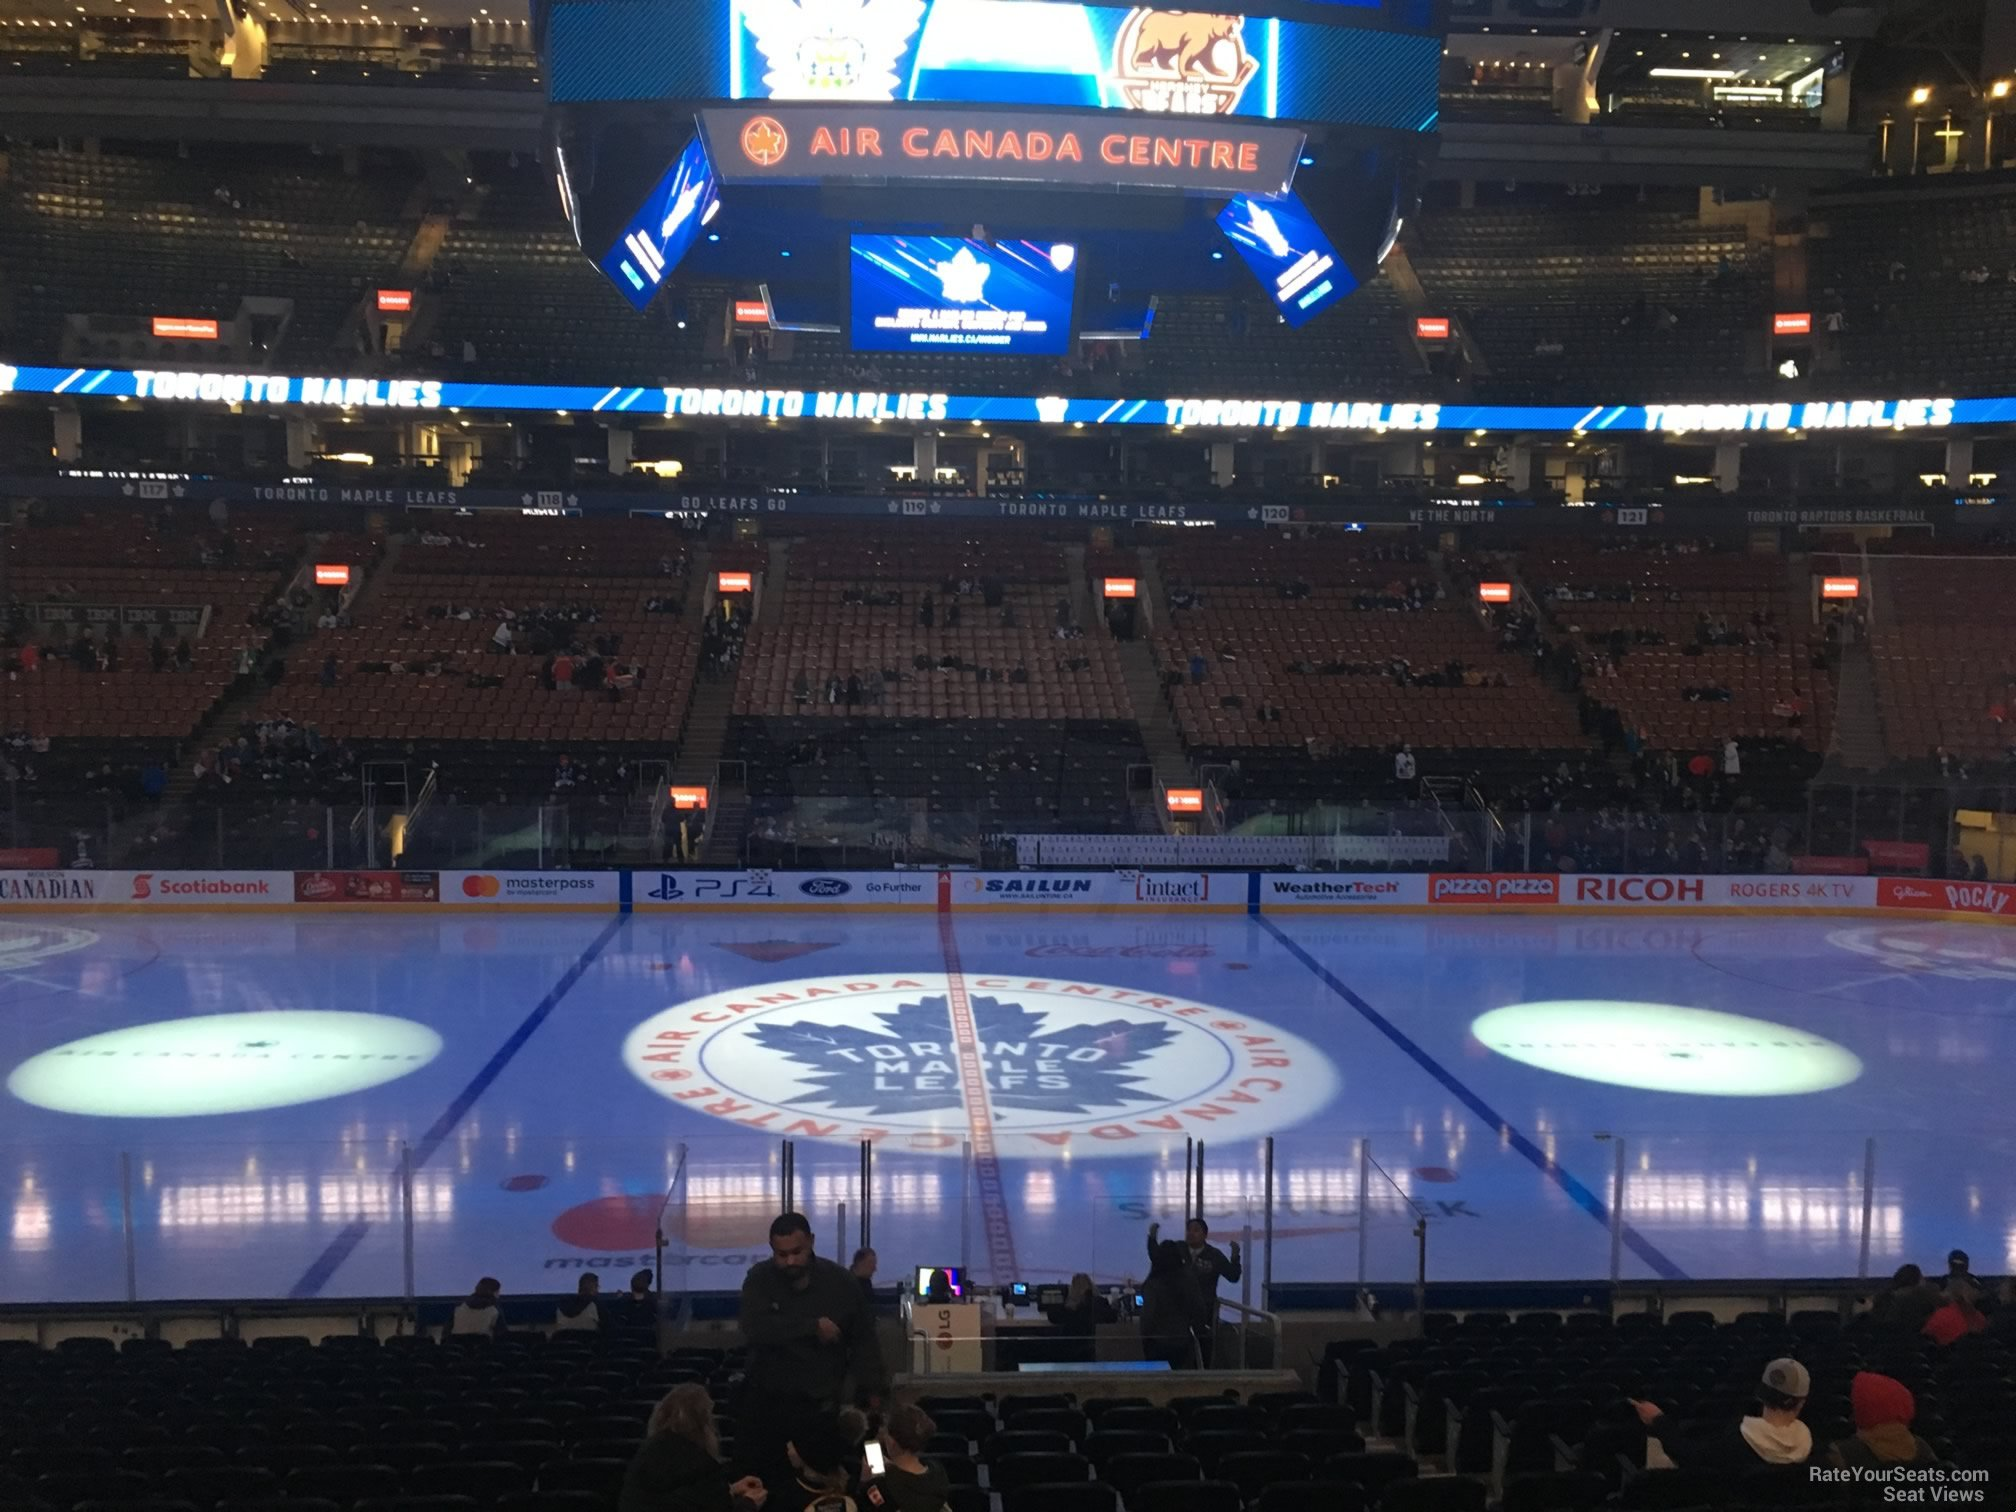 Toronto Maple Leafs Seat View for Scotiabank Arena Section 108, Row 20